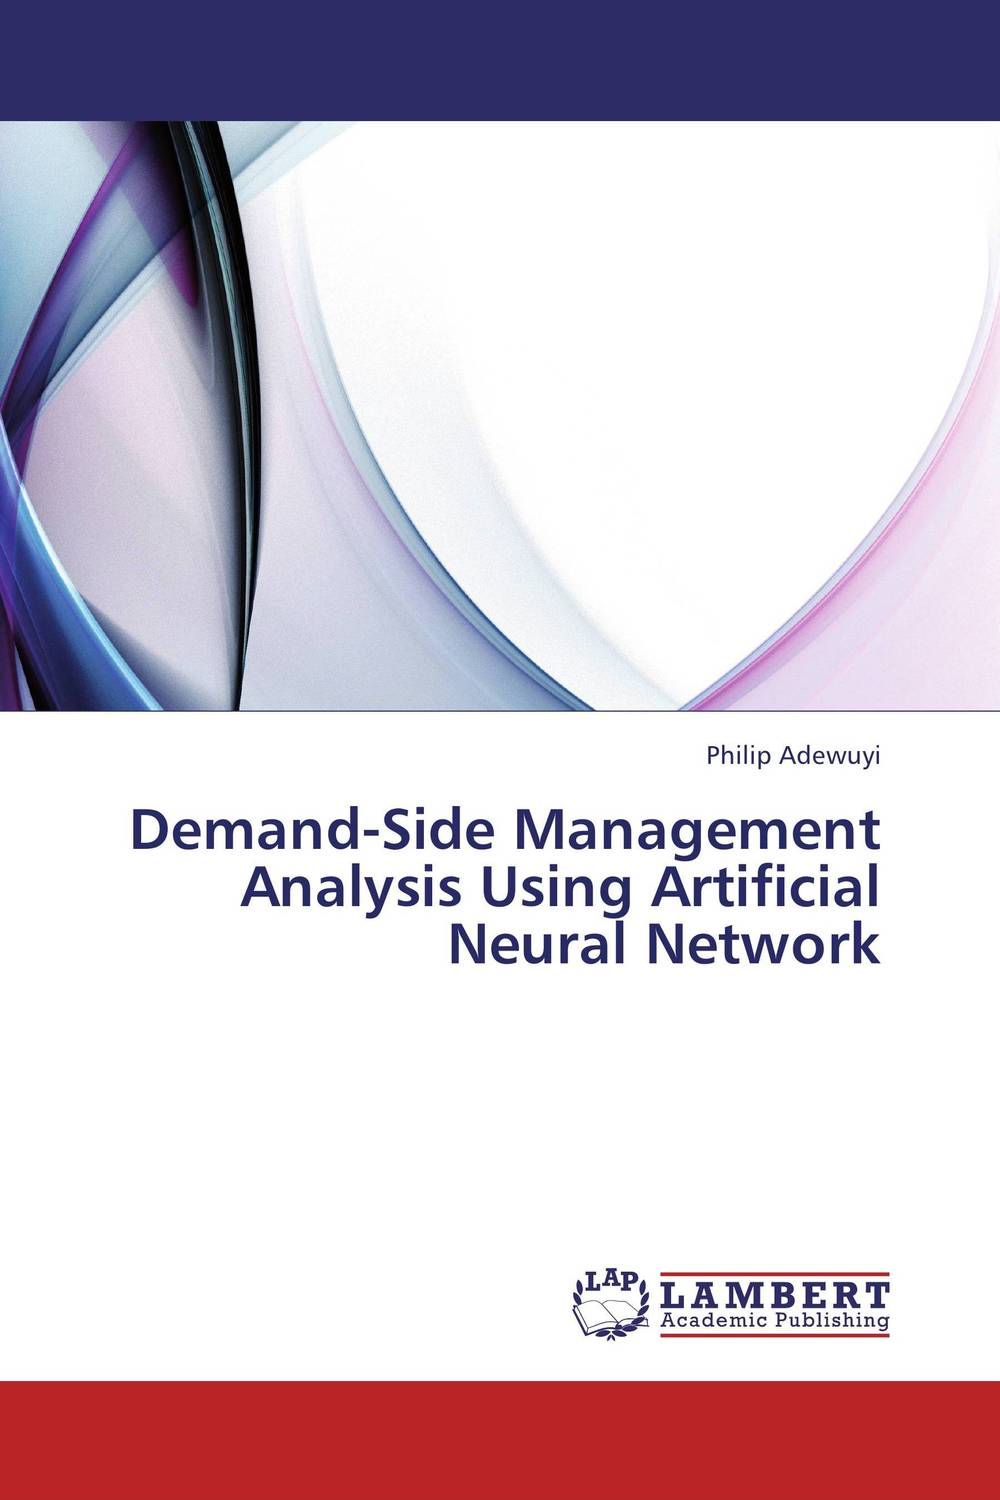 Demand-Side Management Analysis Using Artificial Neural Network eve teasing in university campus